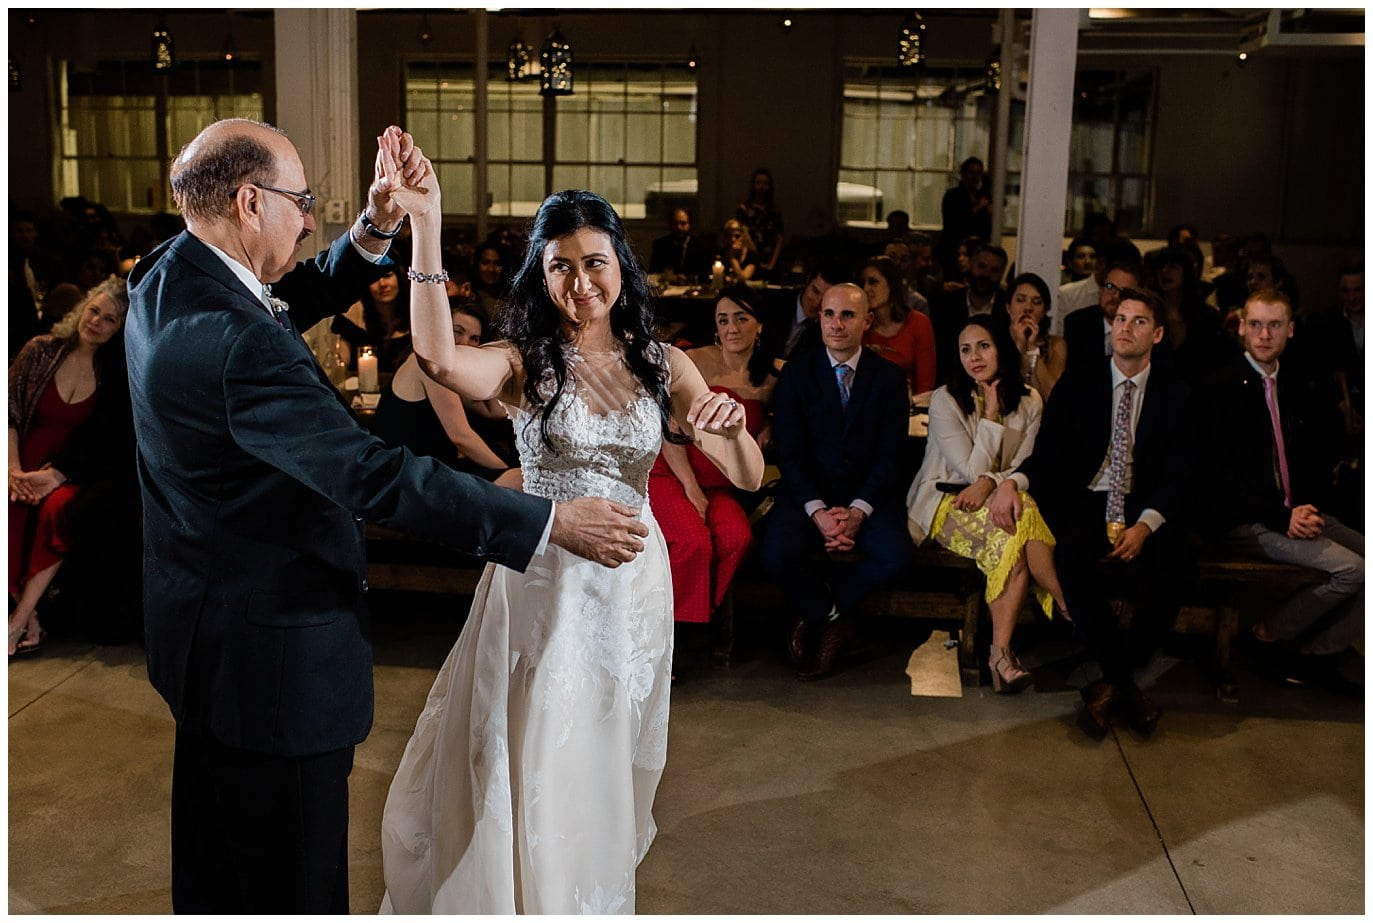 father daughter dance at Denver wedding reception blanc wedding photographer Jennie Crate